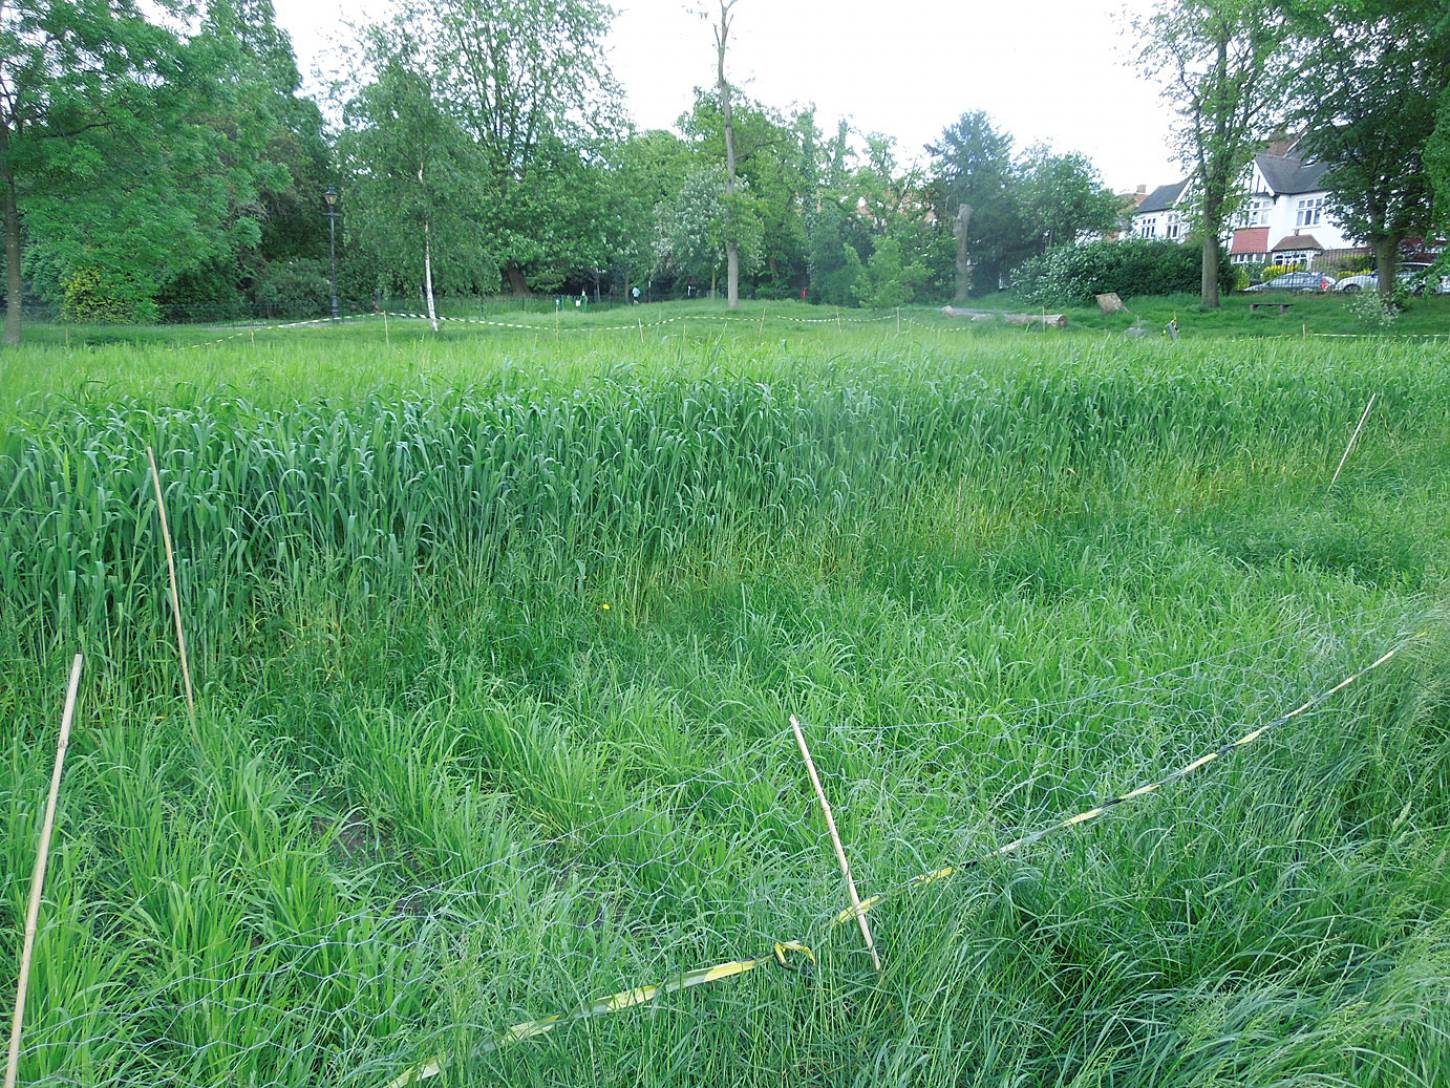 Blue Cone Rivet starting to head with flag leaves with Madeira wheat in front, Ruskin Park wheat review #1 - 5:41pm&nbsp;24<sup>th</sup>&nbsp;May.&nbsp;'16